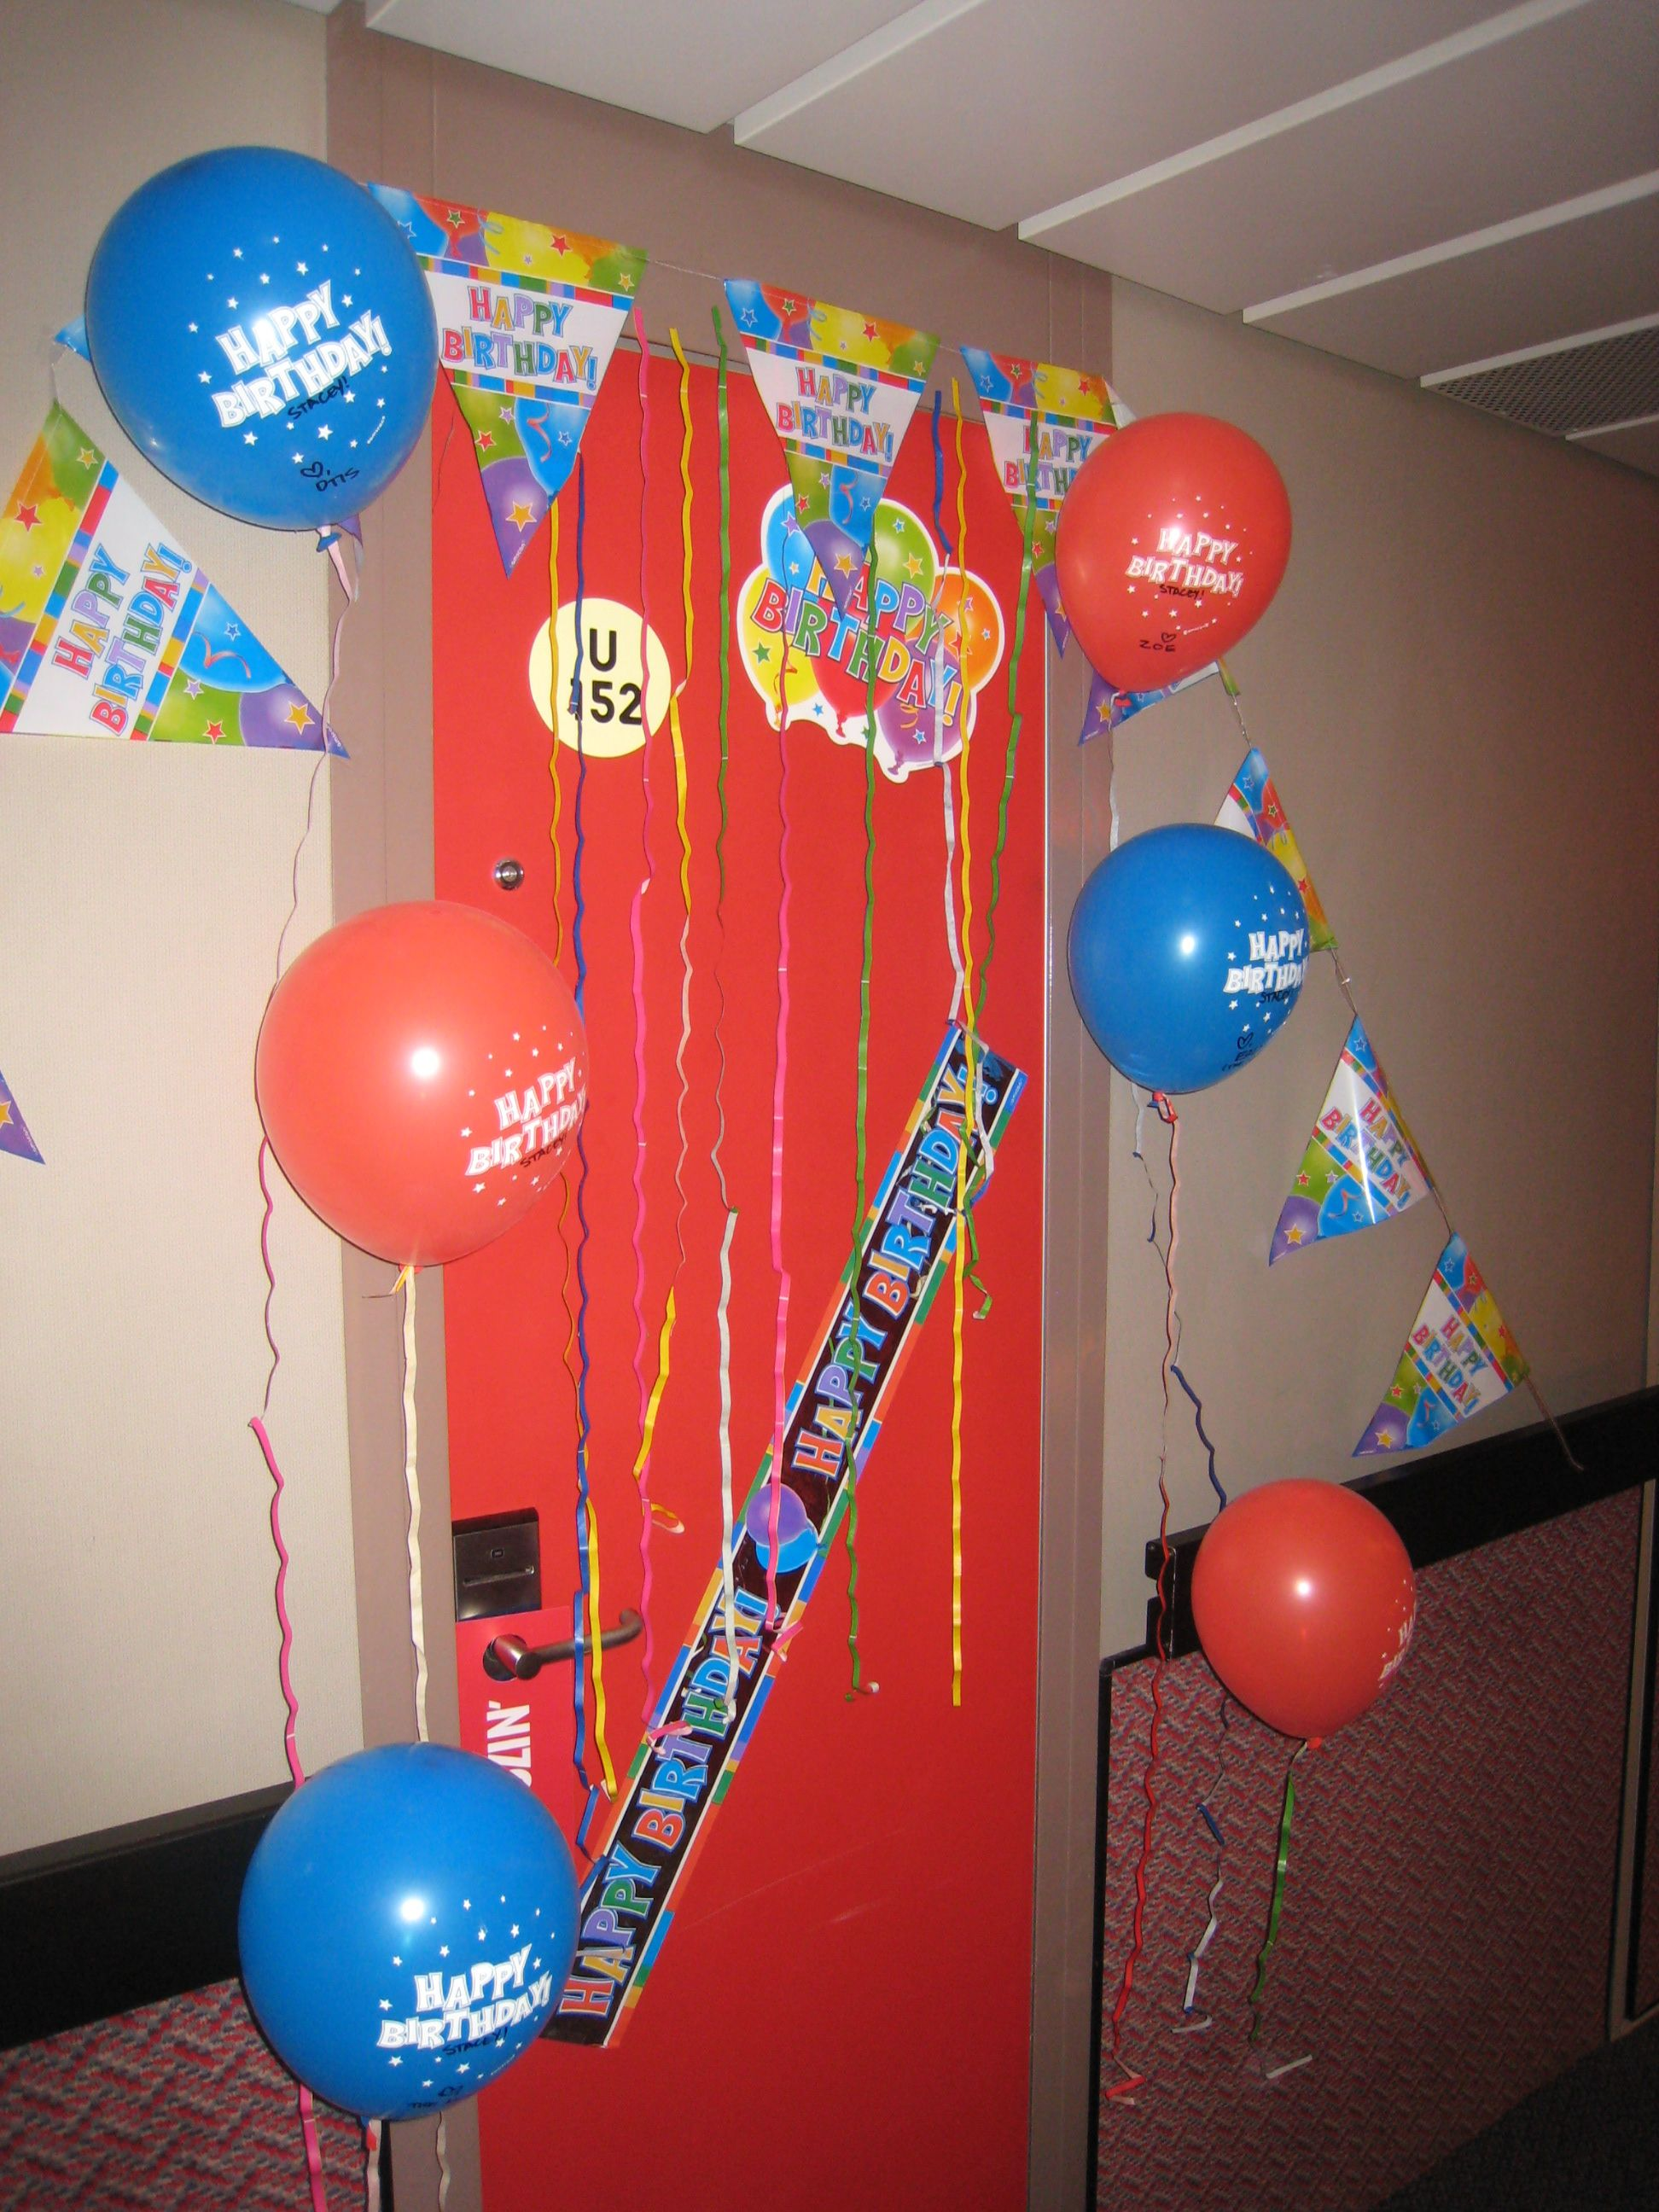 Cruise Door Birthday Decorations Google Search Cruise Door Cruise Door Decor Door Decorations